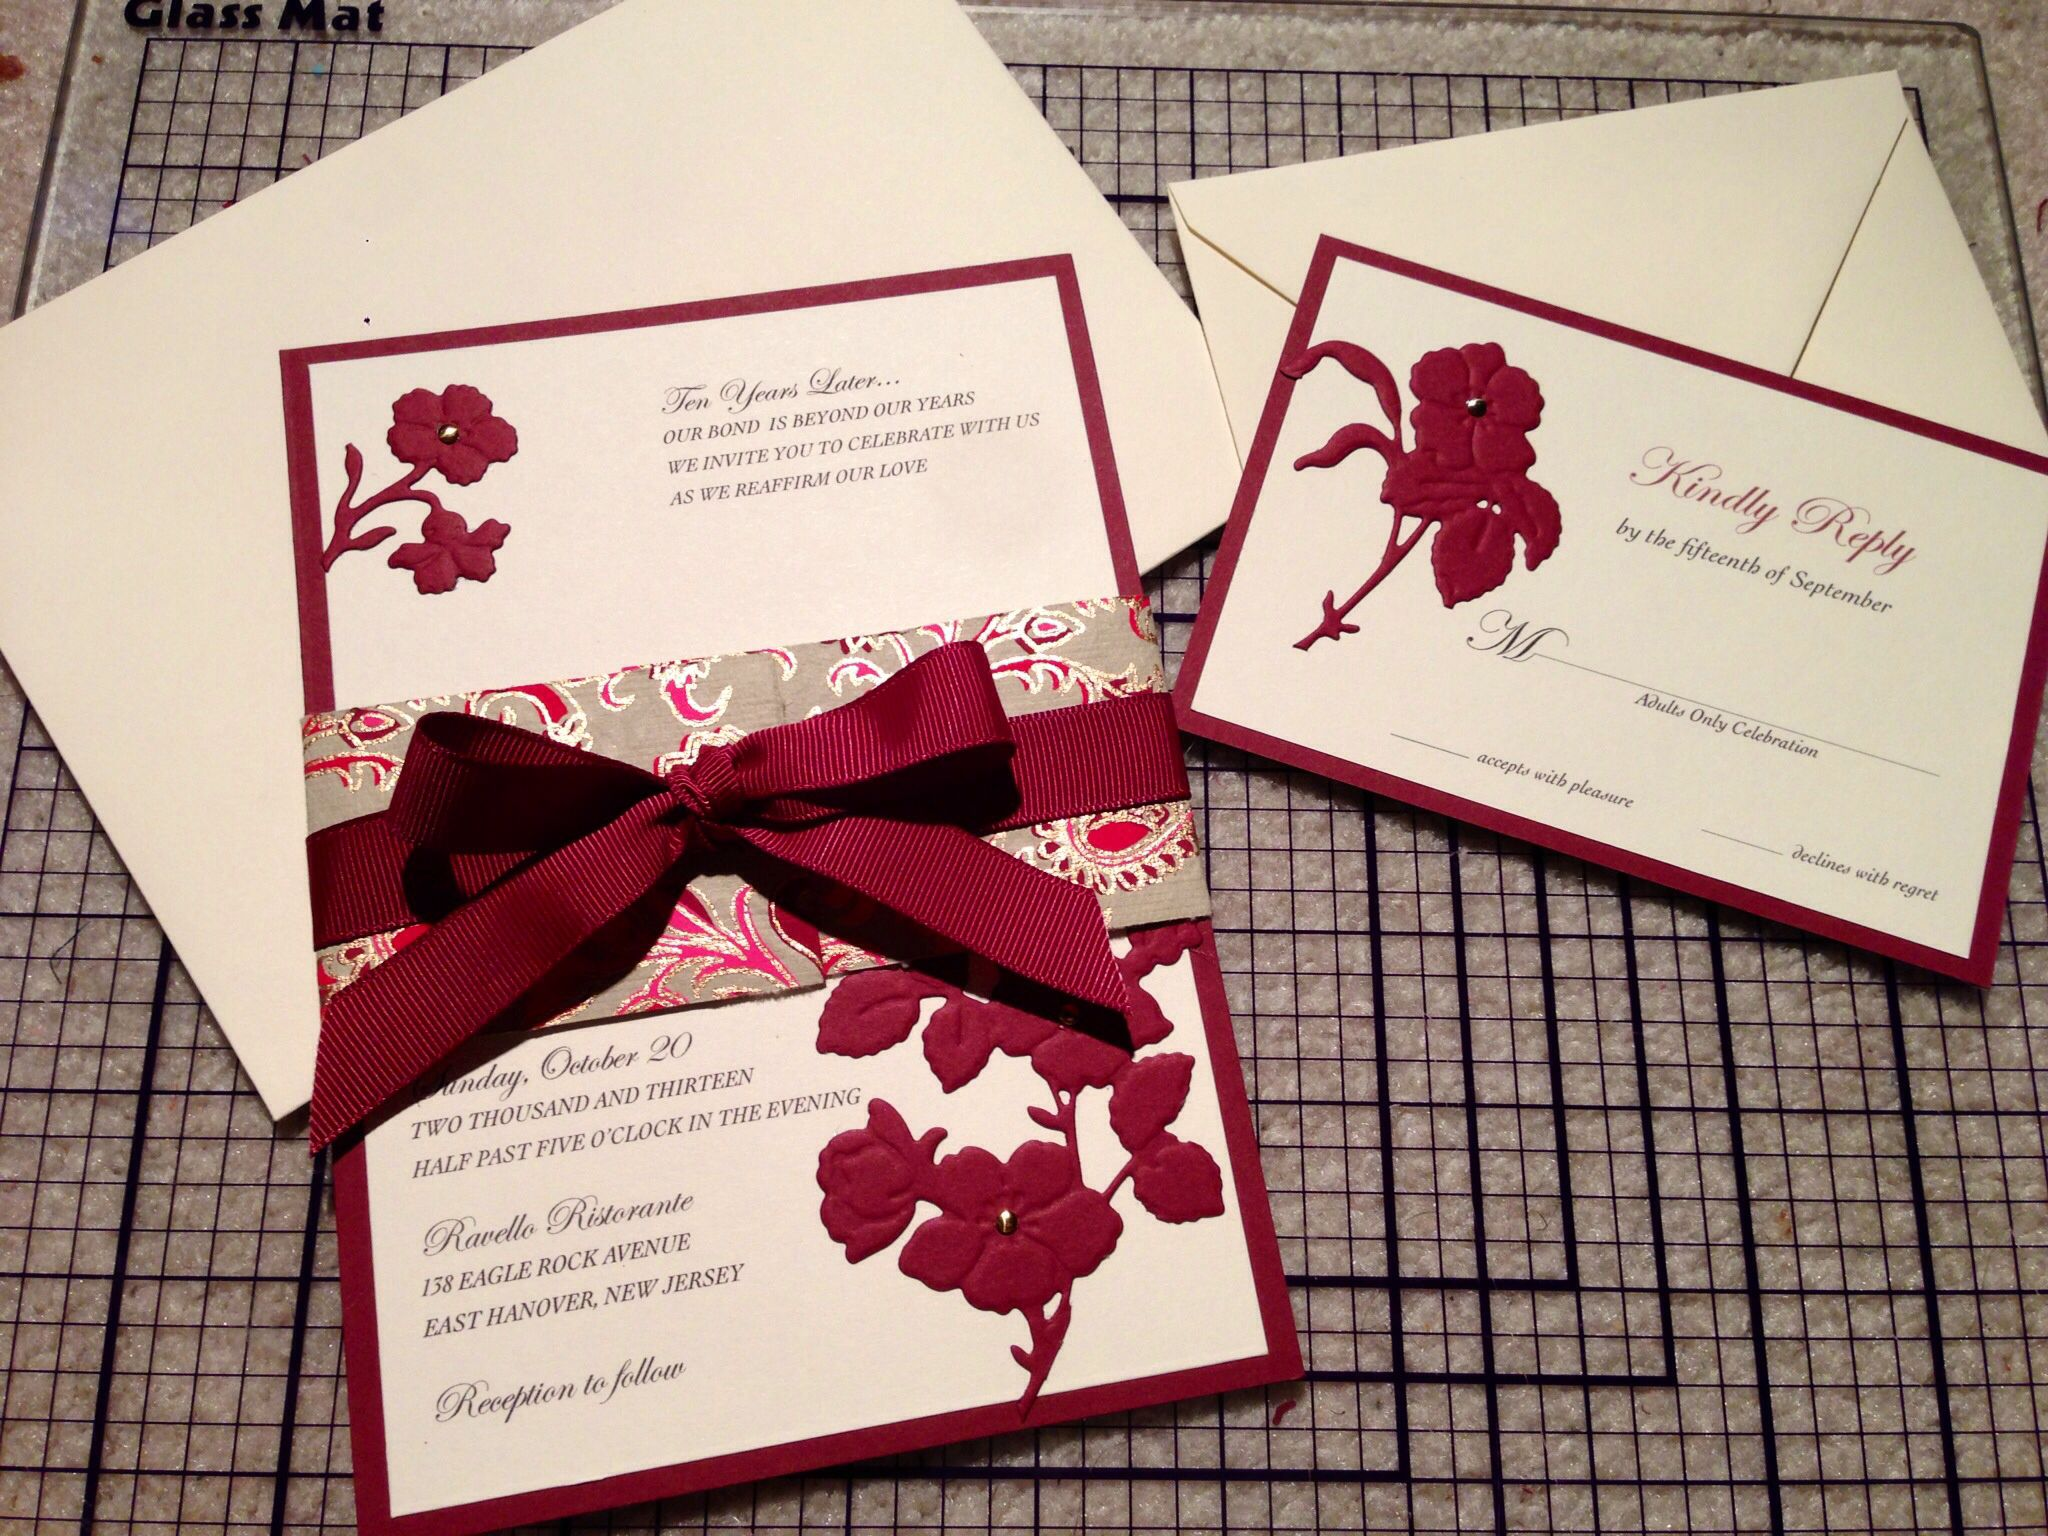 Vow Renewal Invitation Set - designed/copyrighted at The PaperMint ...